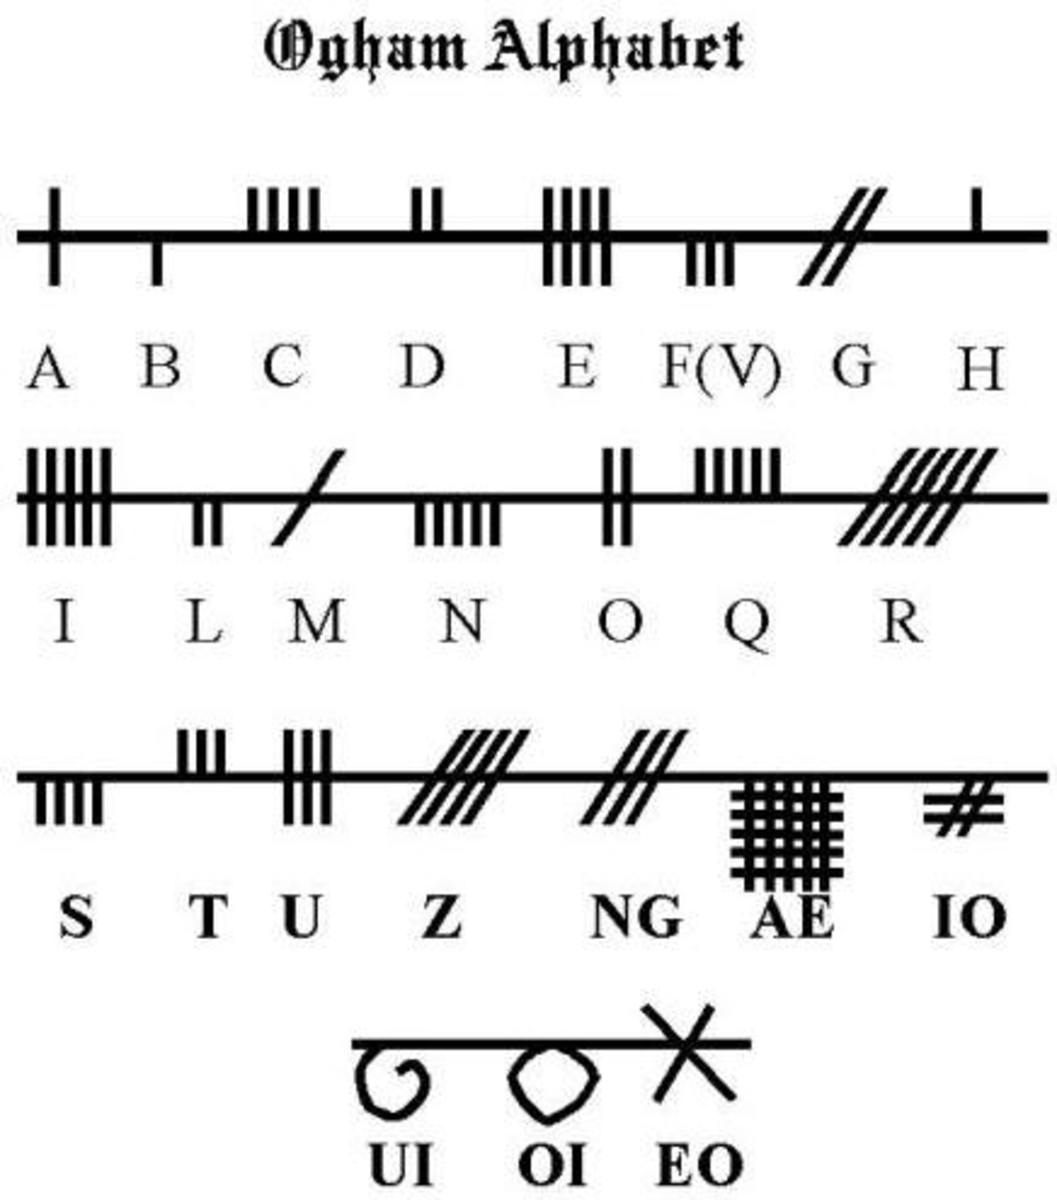 Ogham alphabet of twenty standard letters from Primitive Irish period.